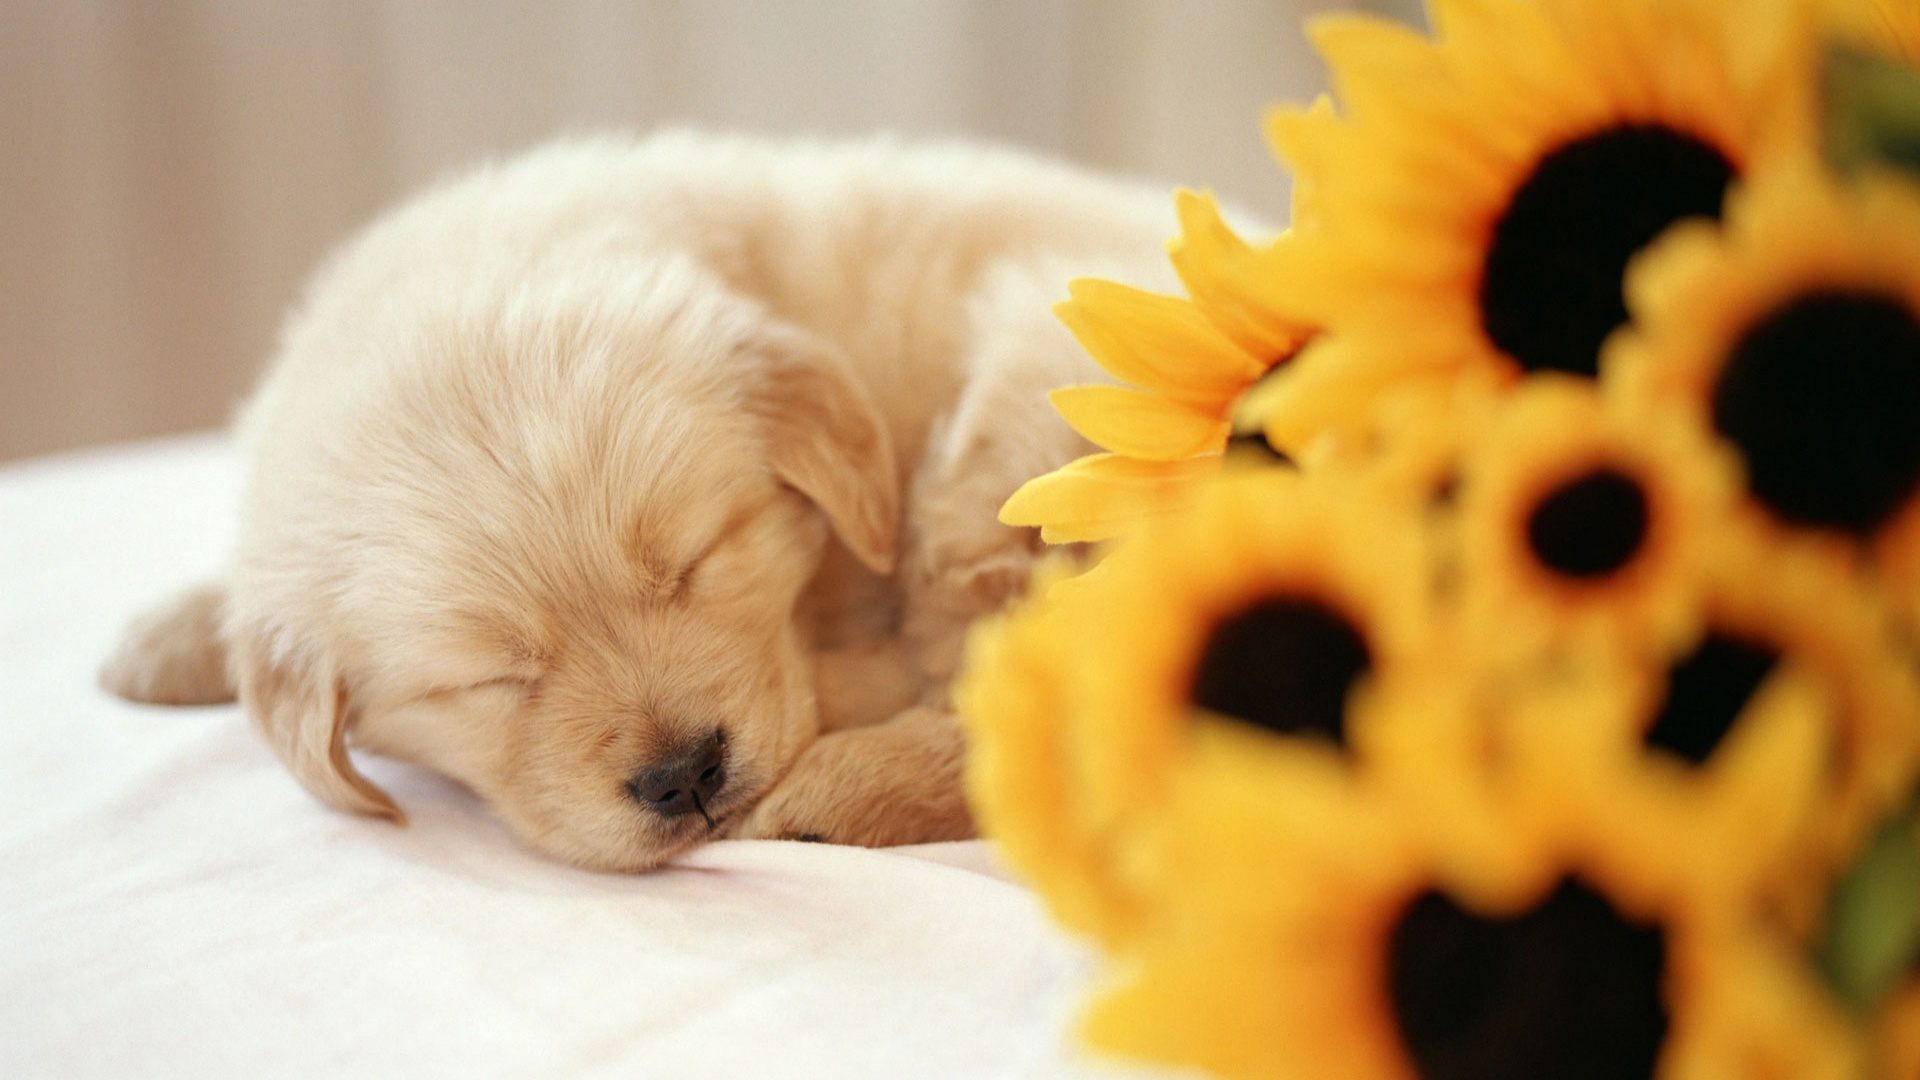 Cute puppy wallpaper wallpapers for free download about (, 1920x1080